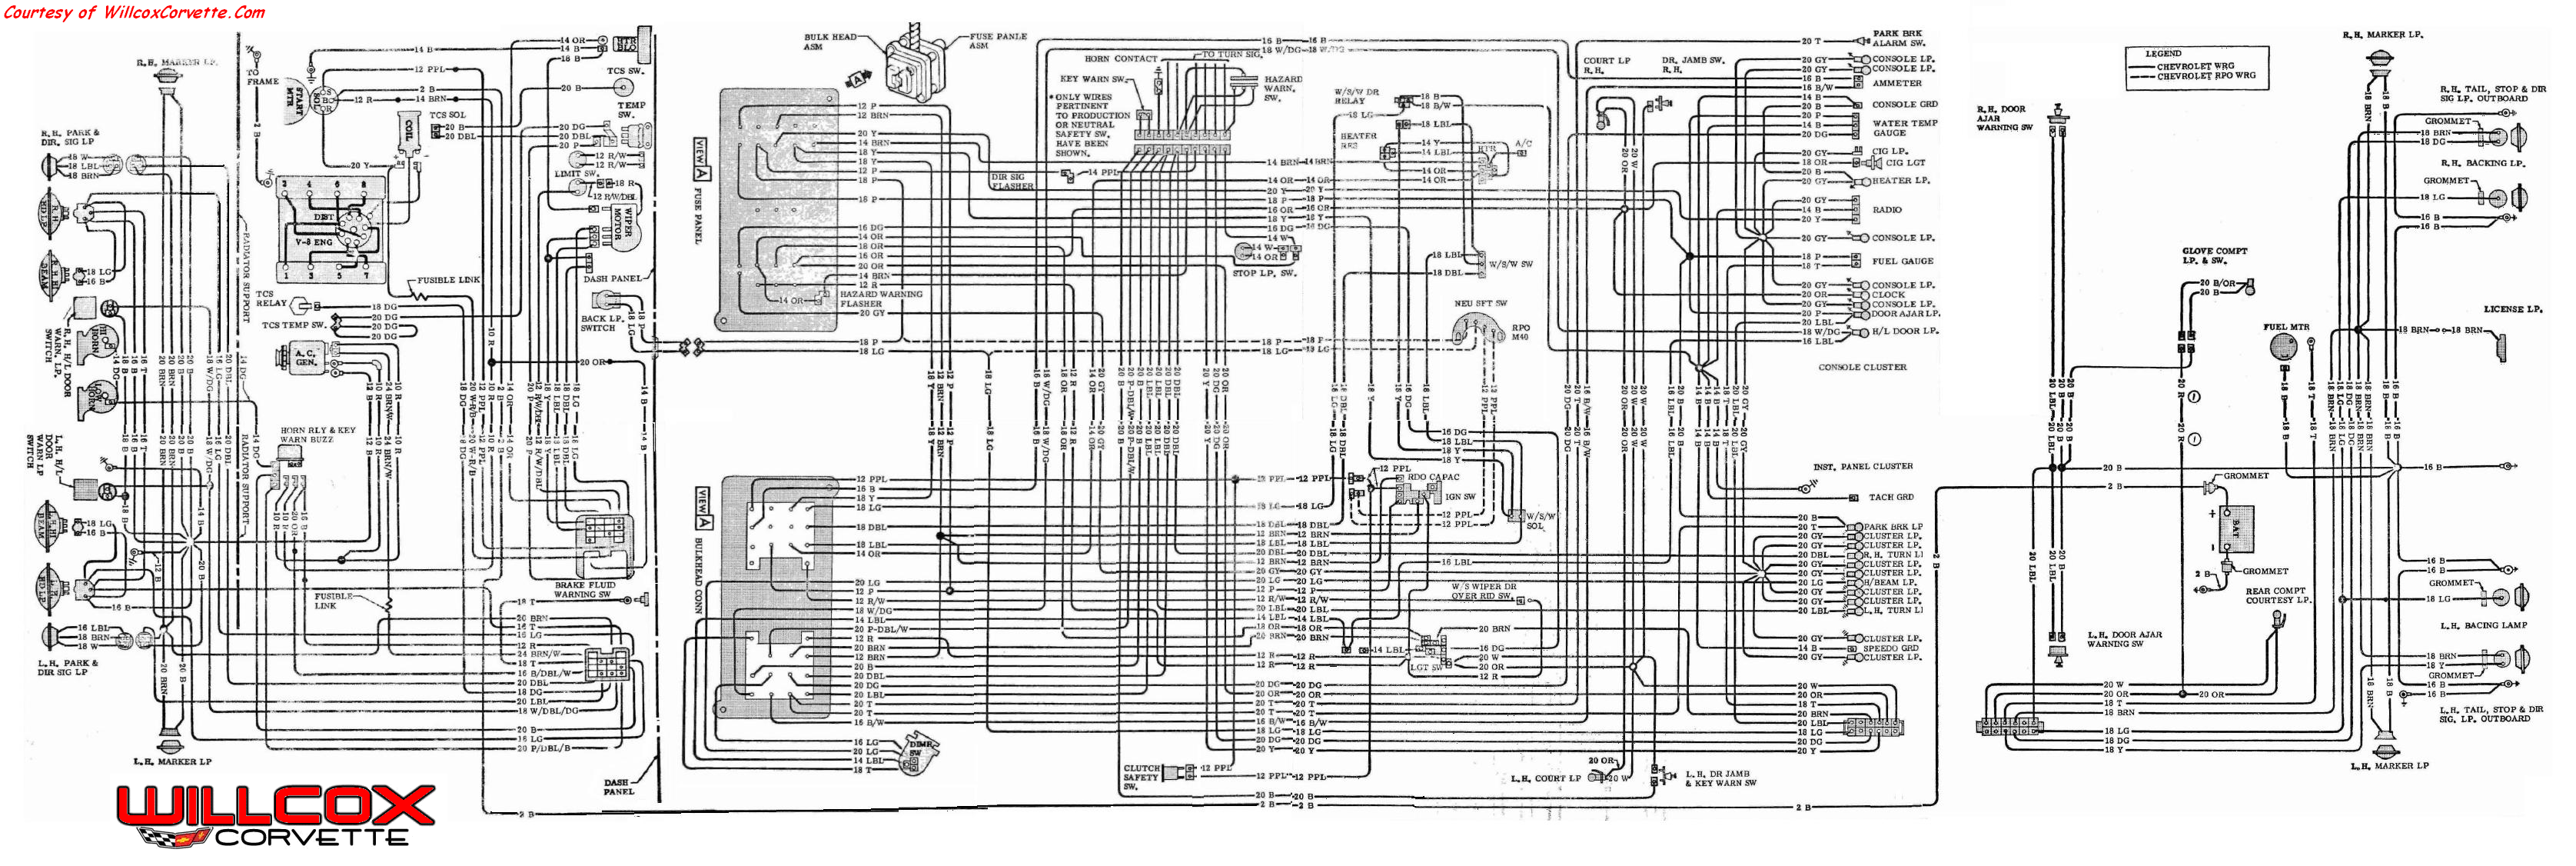 Corvette Wire Schematic Tracer on 1984 corvette wiring schematic